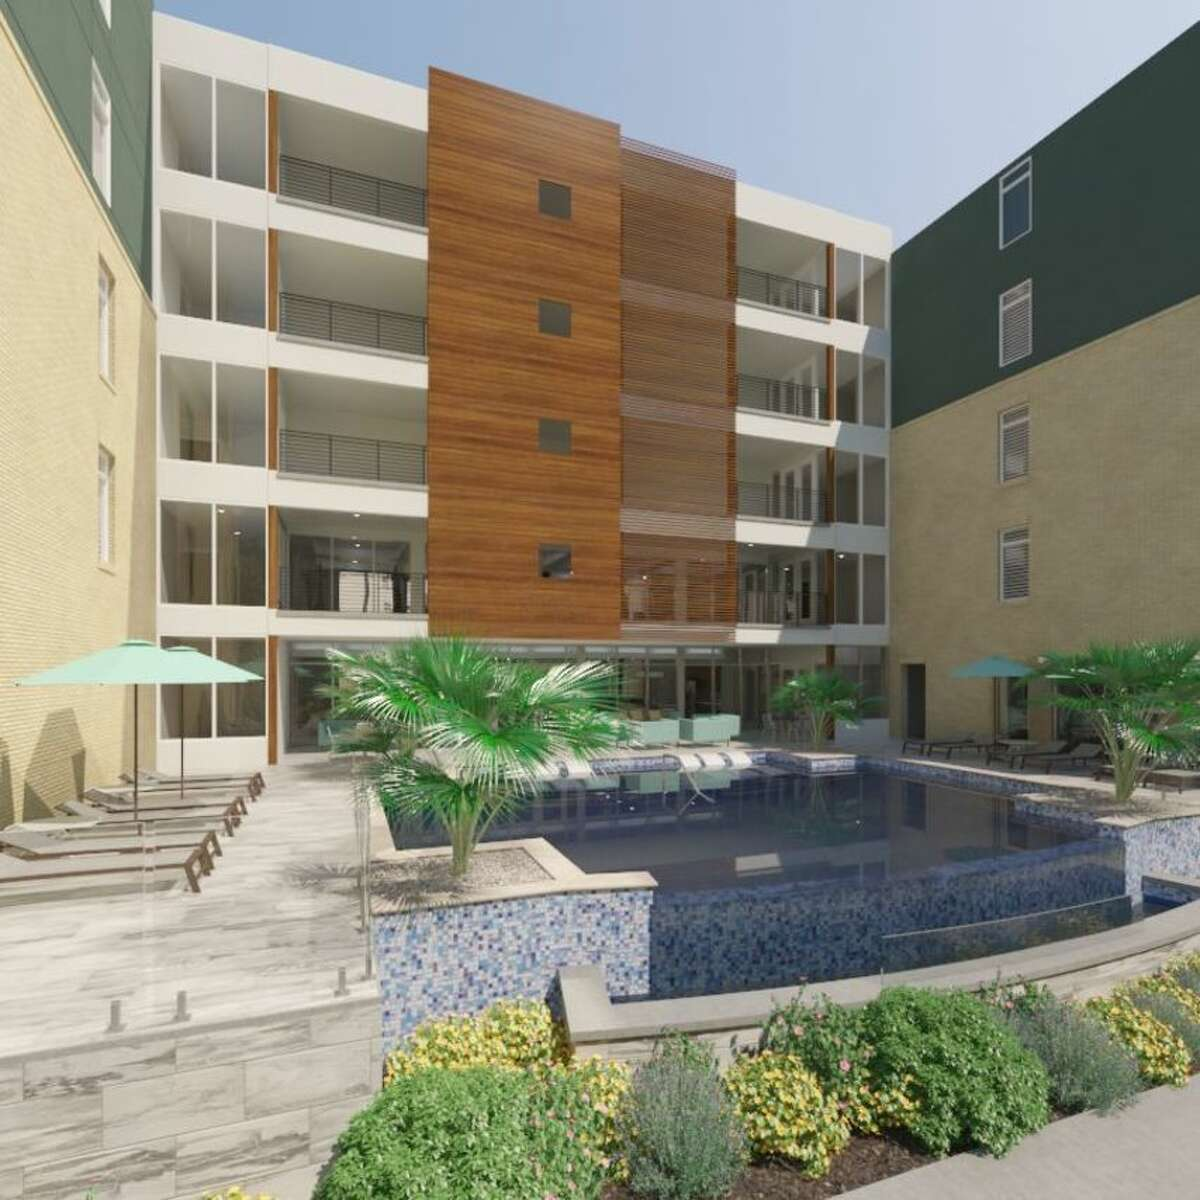 Developer S.C. Bodner is opening 220 new apartment units in a five-story complex at the Riverwalk. The apartments, at 120 9th Street in San Antonio, will be available for rent beginning in October. (Courtesy of S.C. Bodner)